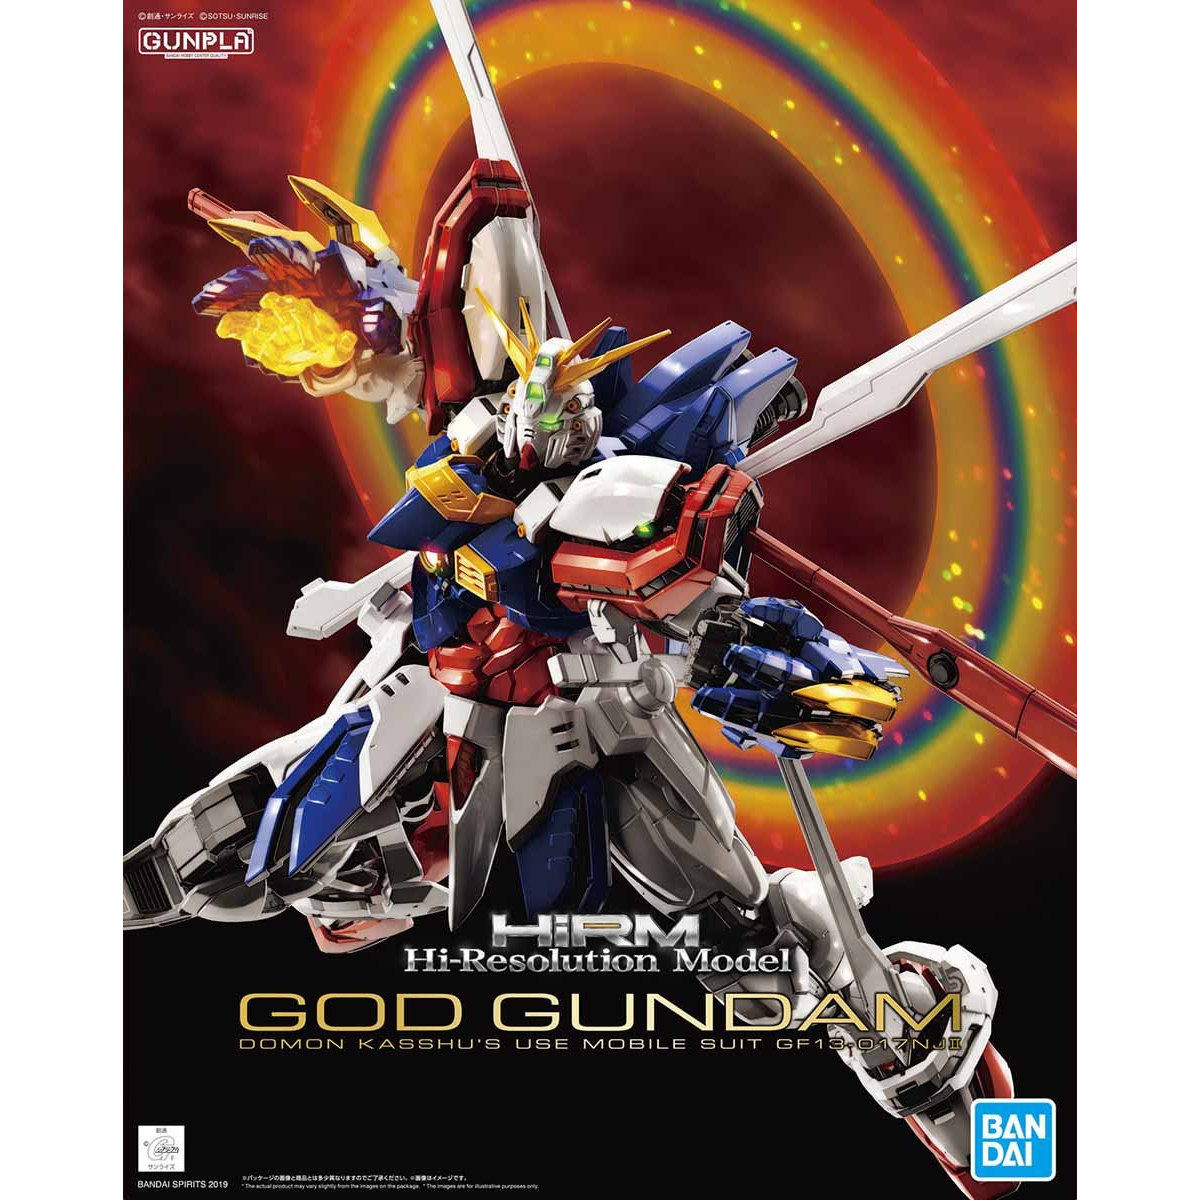 Just Added NEW IMAGES HiRM 1/100 God Gundam